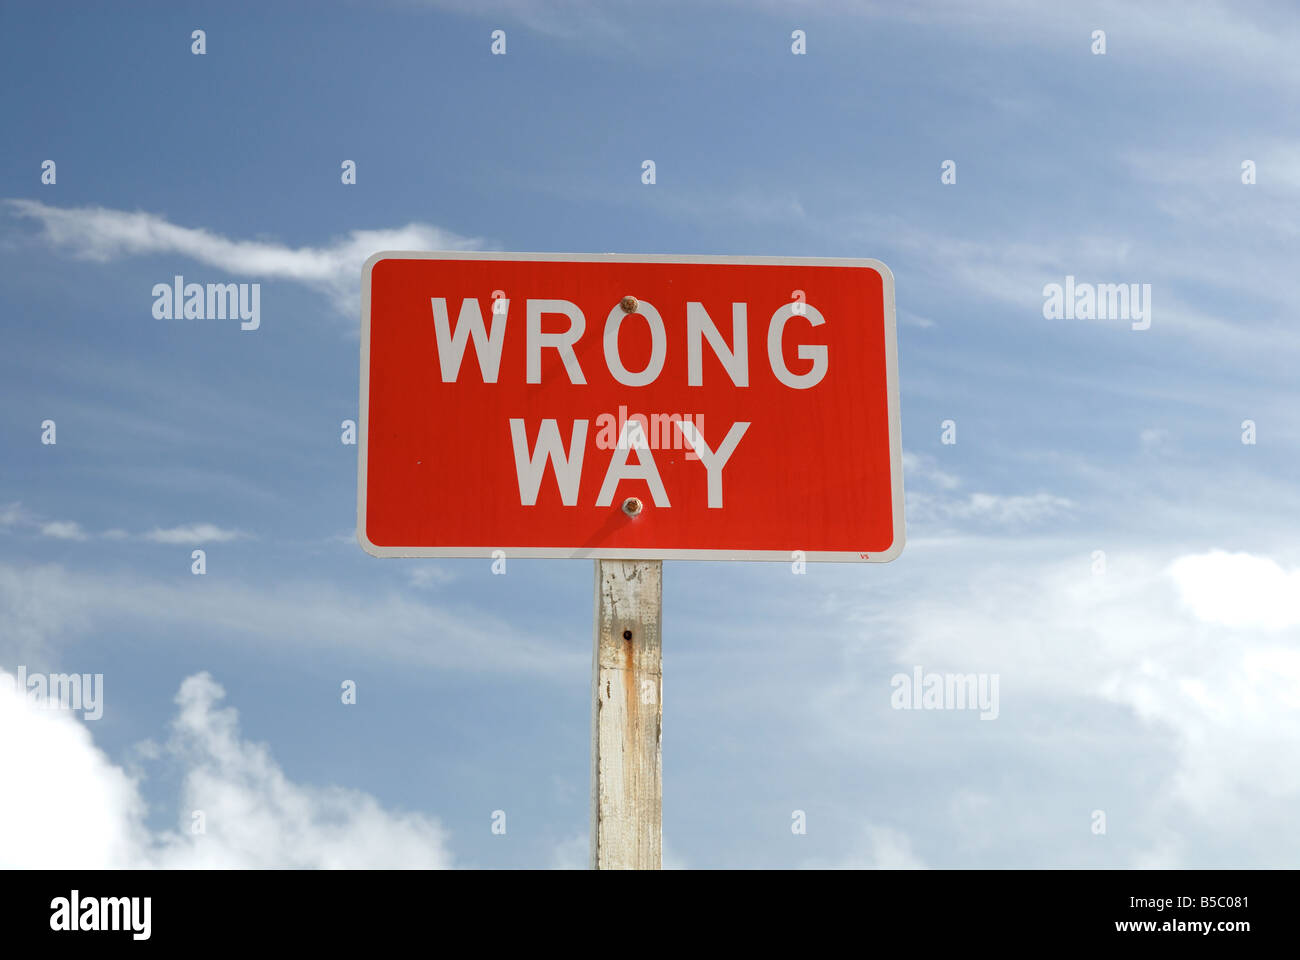 Wrong Way sign against blue sky - Stock Image